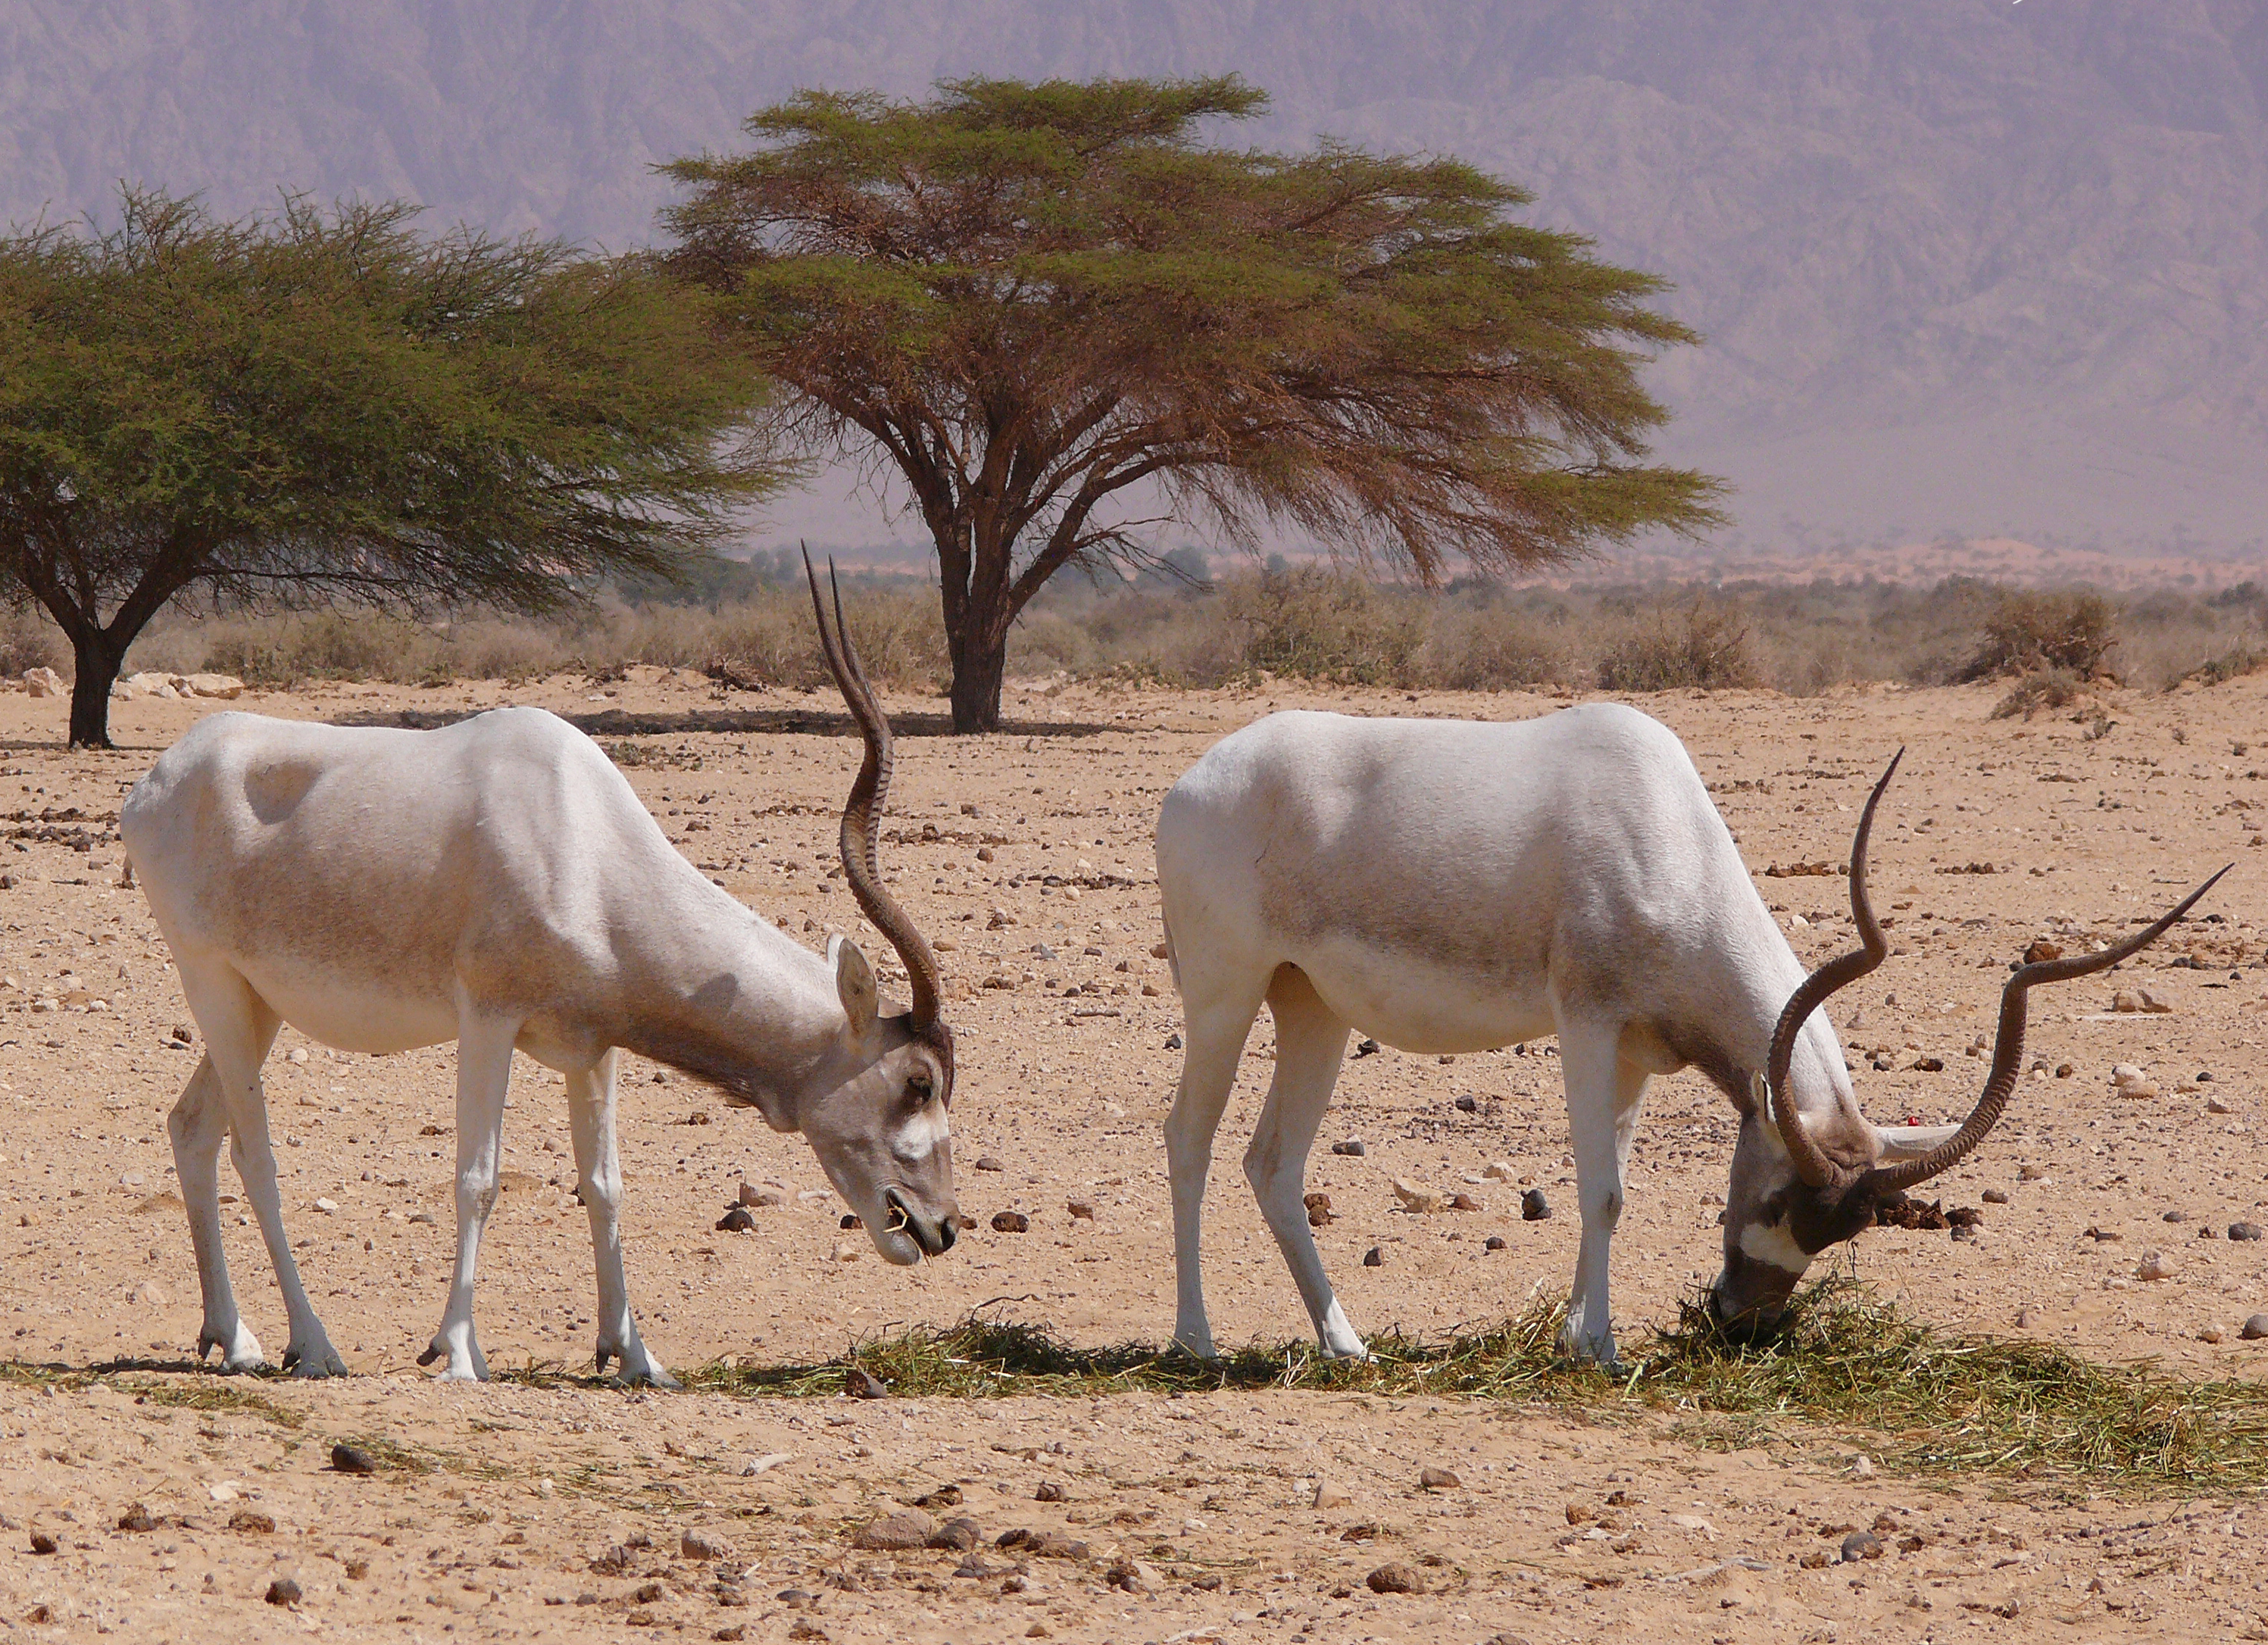 http://upload.wikimedia.org/wikipedia/commons/3/31/Addax-1-Zachi-Evenor.jpg